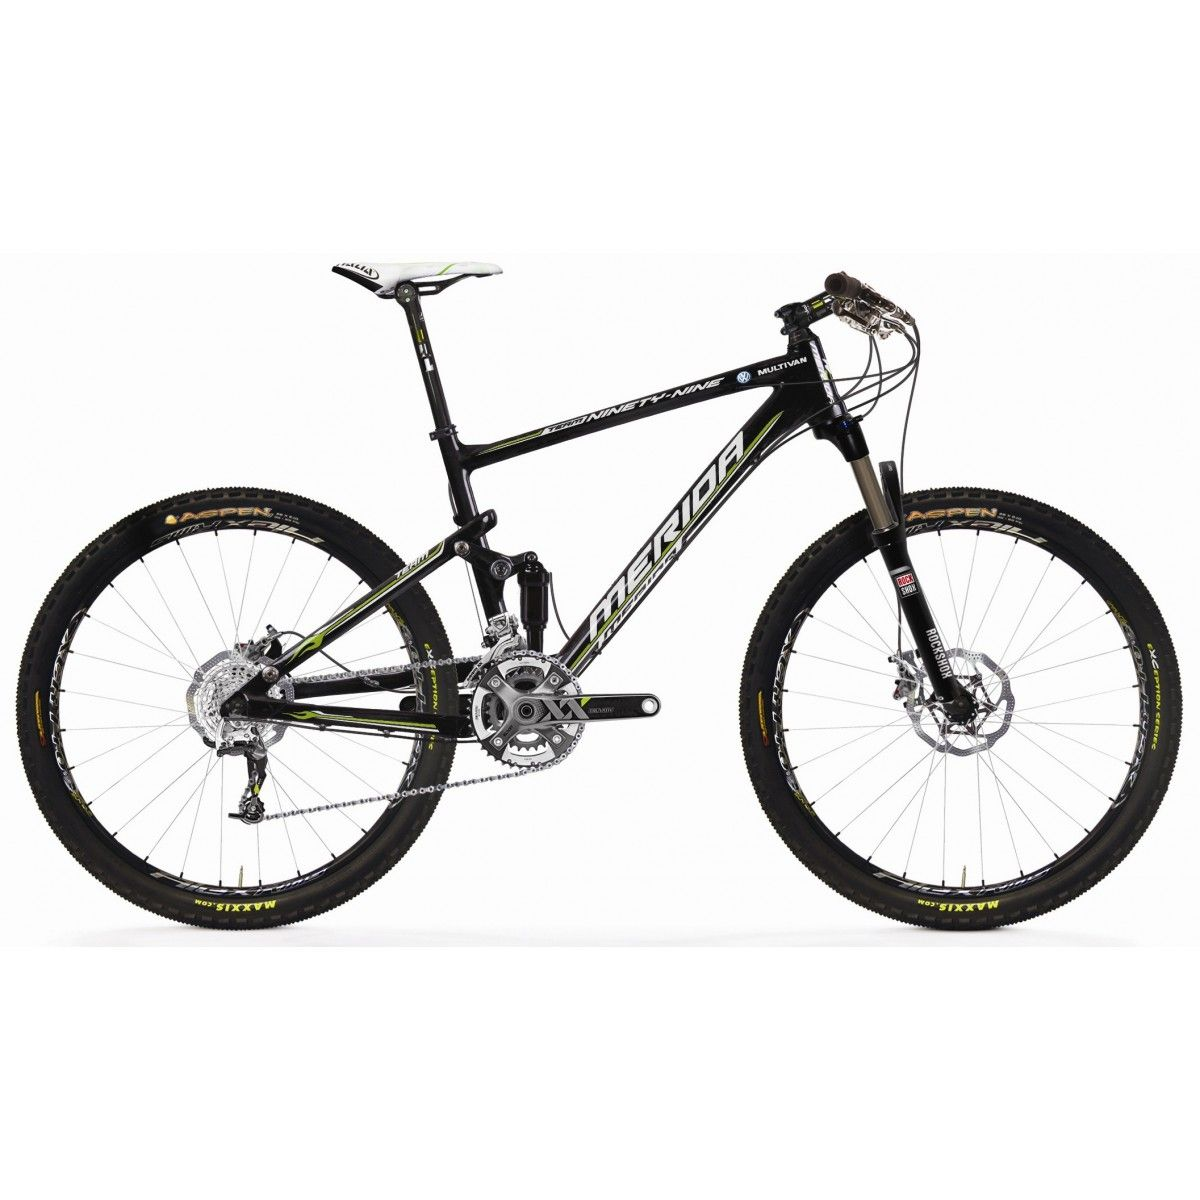 Merida Ninety Nine Carbon Team Mountain Bike 2013 Full Suspension Mtb Merida Bikes Bike Bicycle